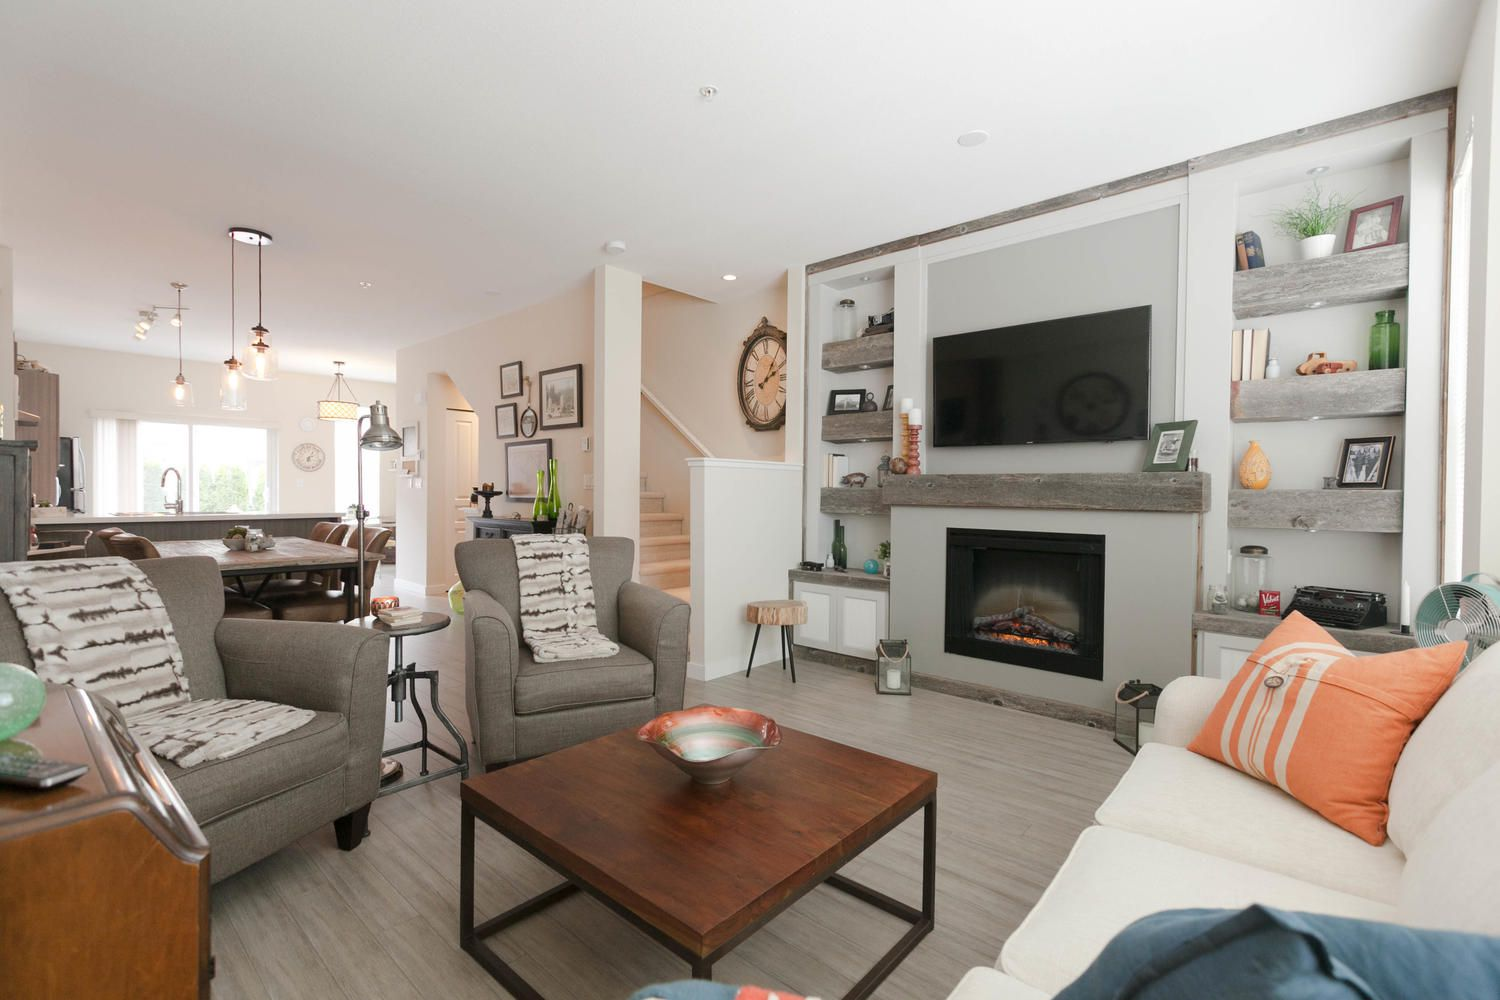 """Photo 5: Photos: 97 7938 209 Street in Langley: Willoughby Heights Townhouse for sale in """"Red Maple Park"""" : MLS®# R2260950"""